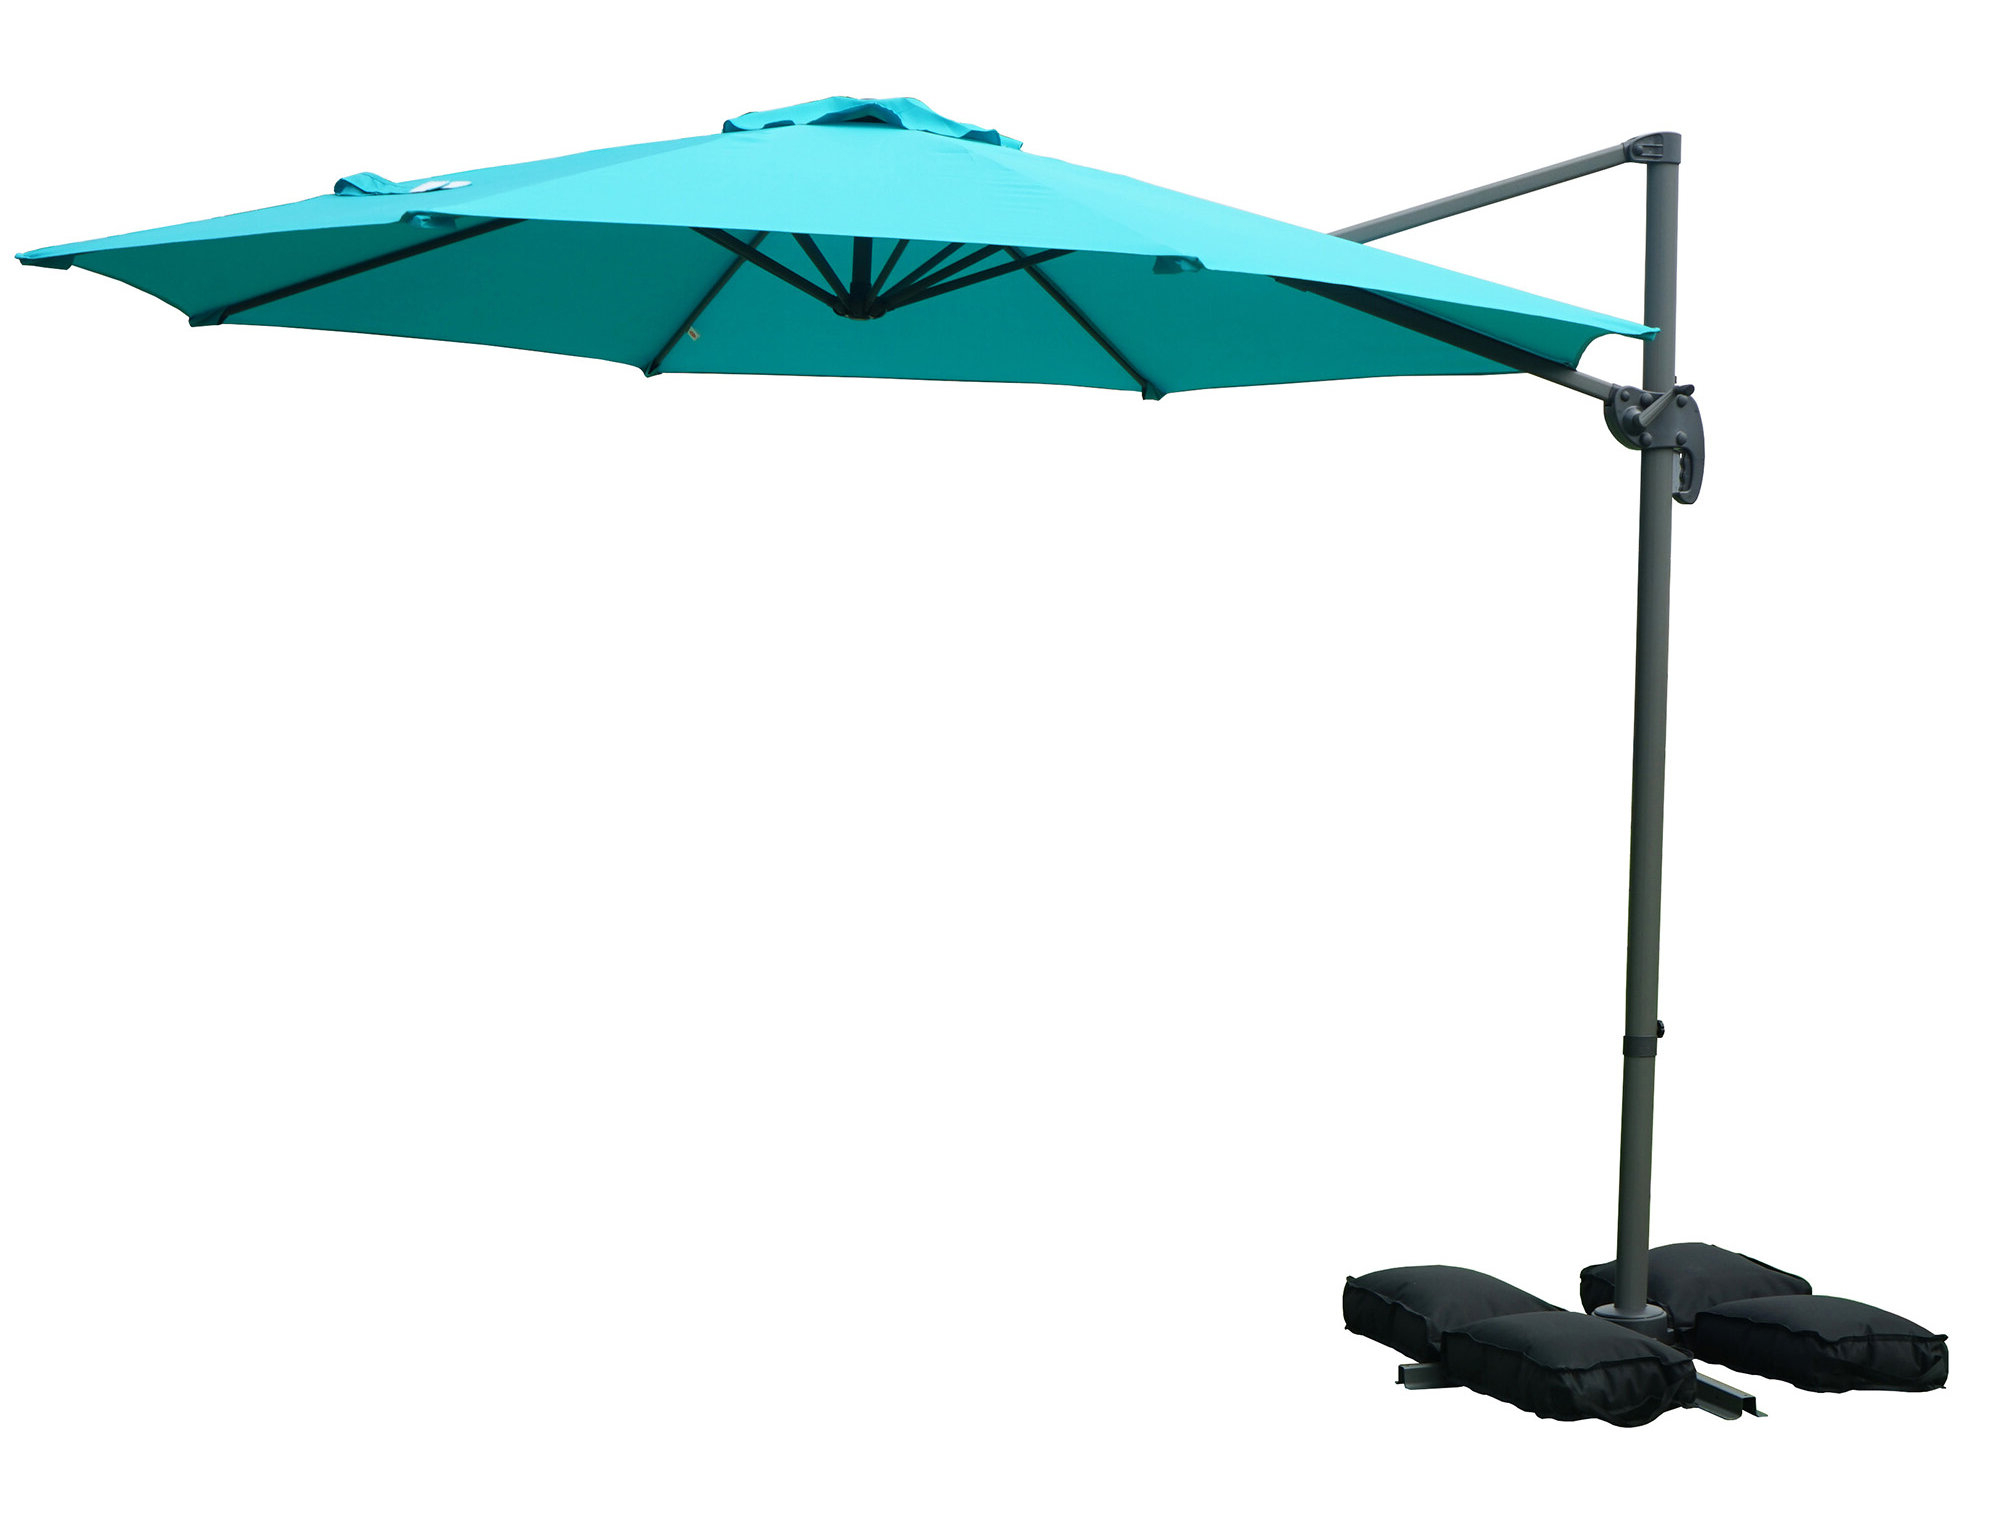 Latest Tottenham Patio Hanging Offset 10' Cantilever Umbrella Pertaining To Tottenham Patio Hanging Offset Cantilever Umbrellas (View 2 of 20)